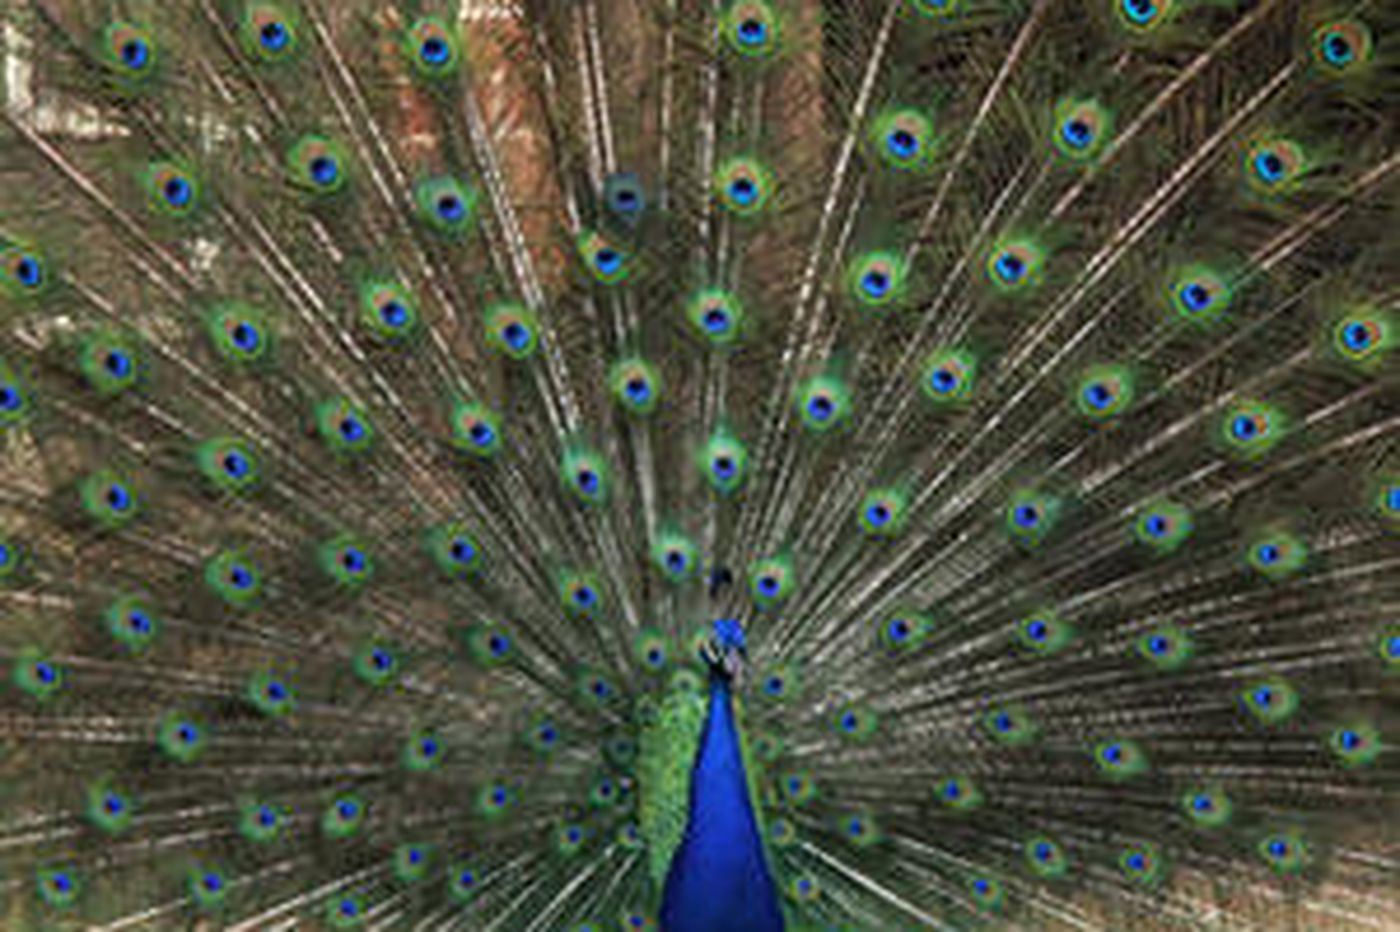 Carnal Knowledge | The allure of the peacock - both human and avian